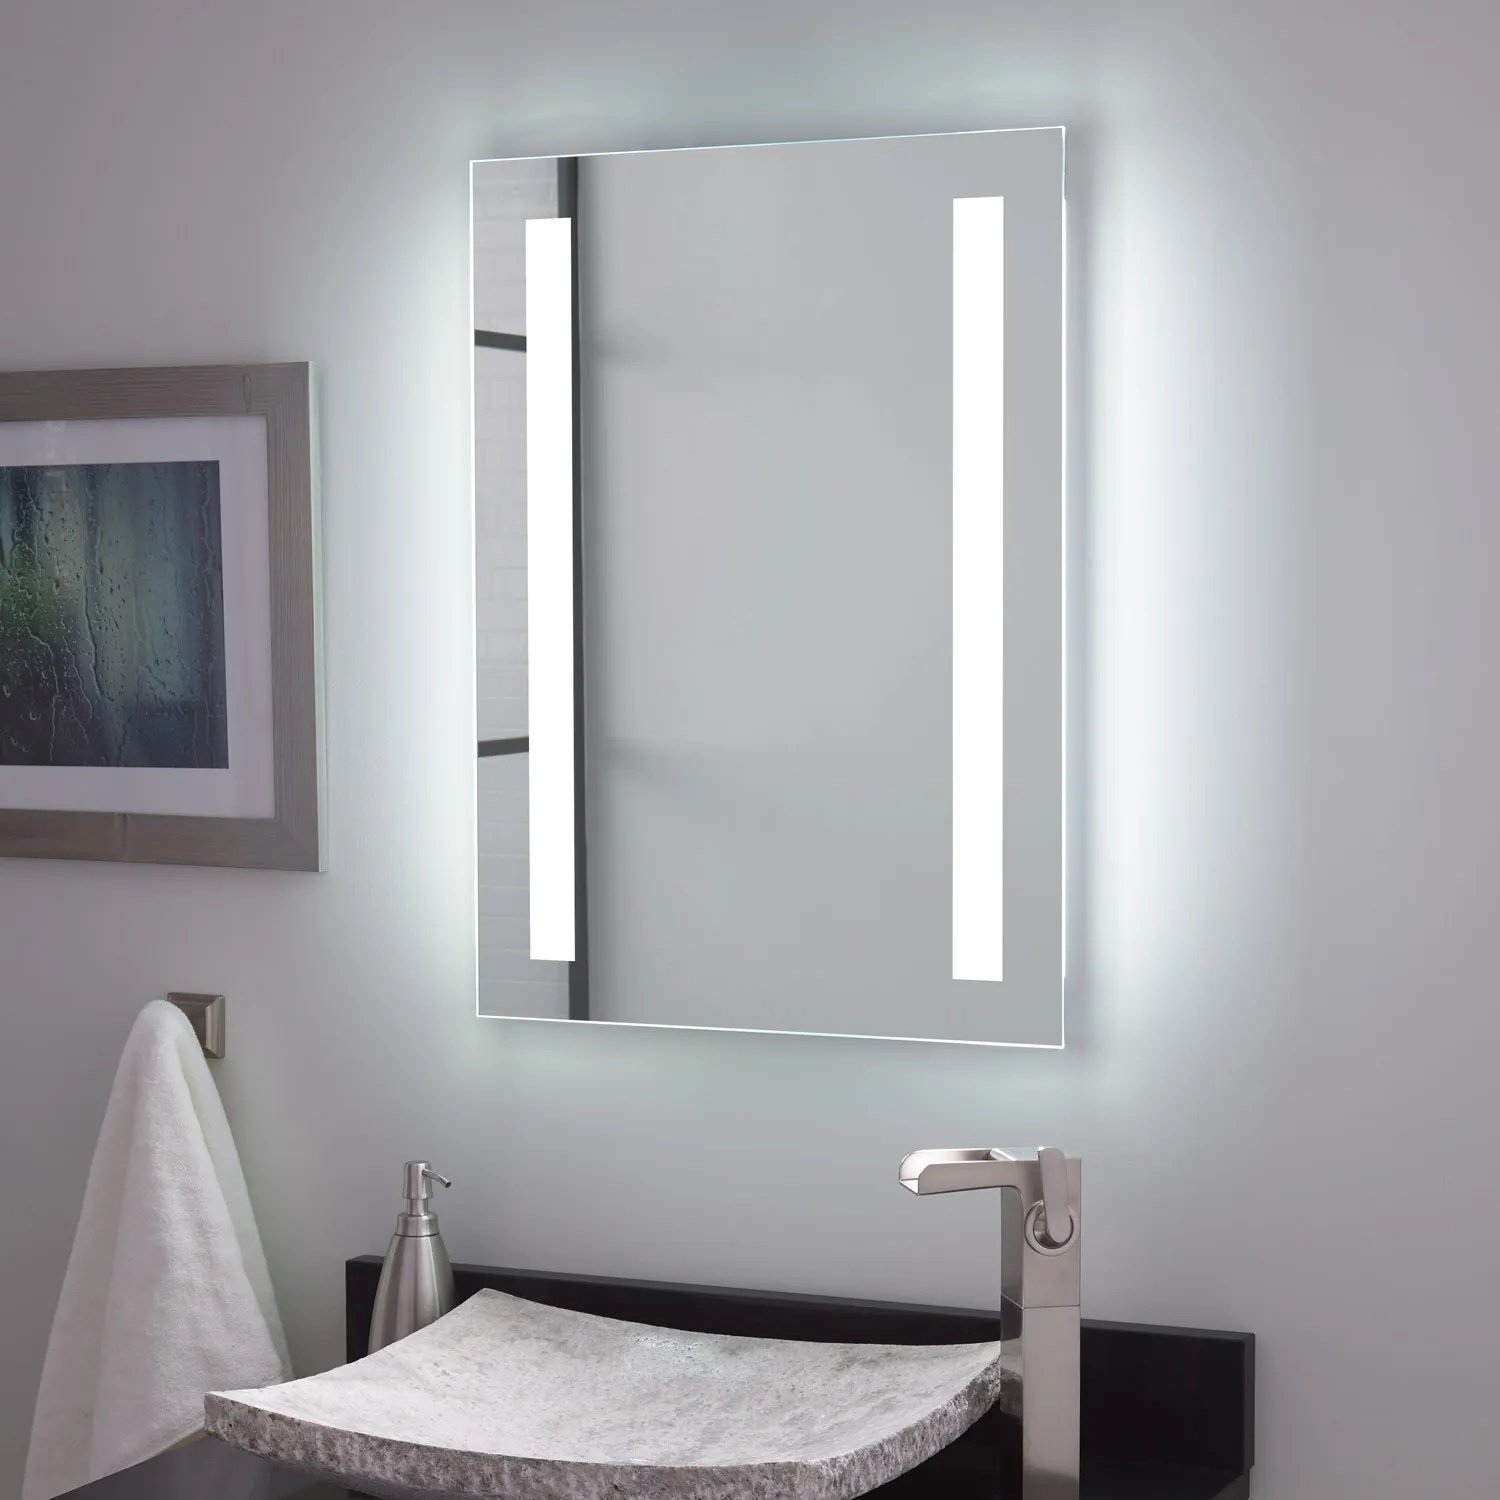 Bathroom Sleek Mirror Signature Hardware